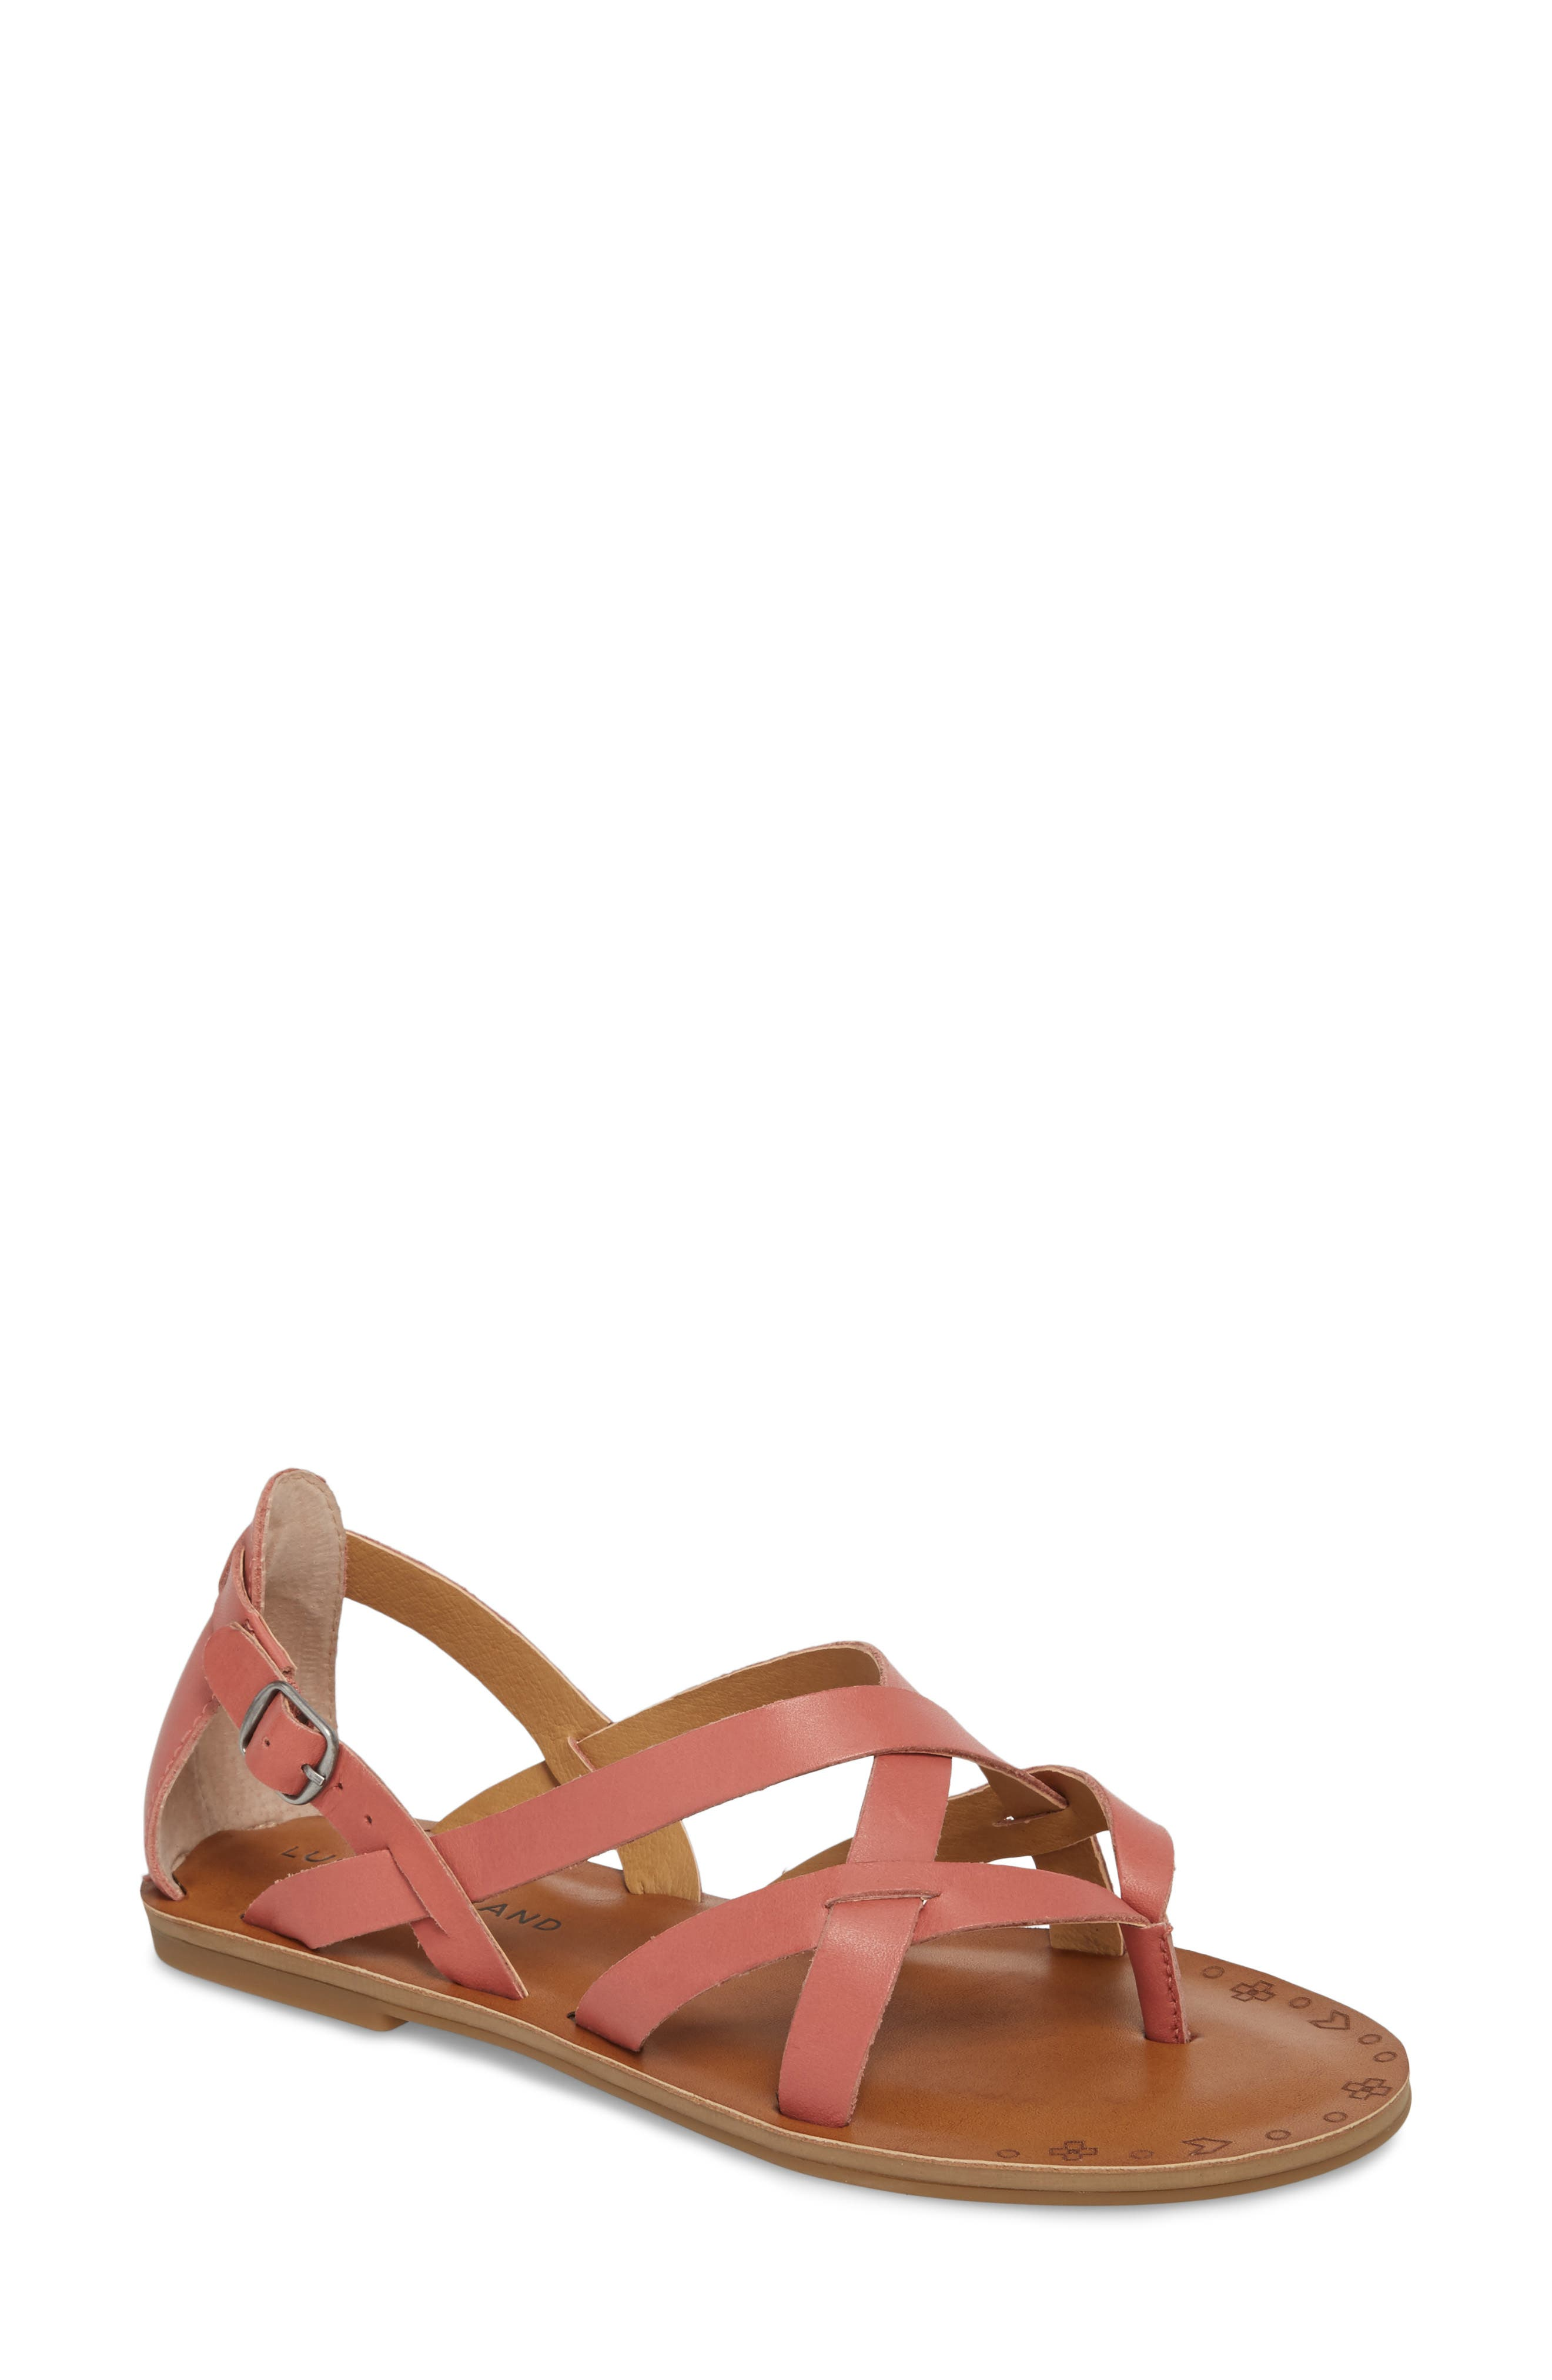 Lucky Brand Ainsley Flat Sandal- Pink